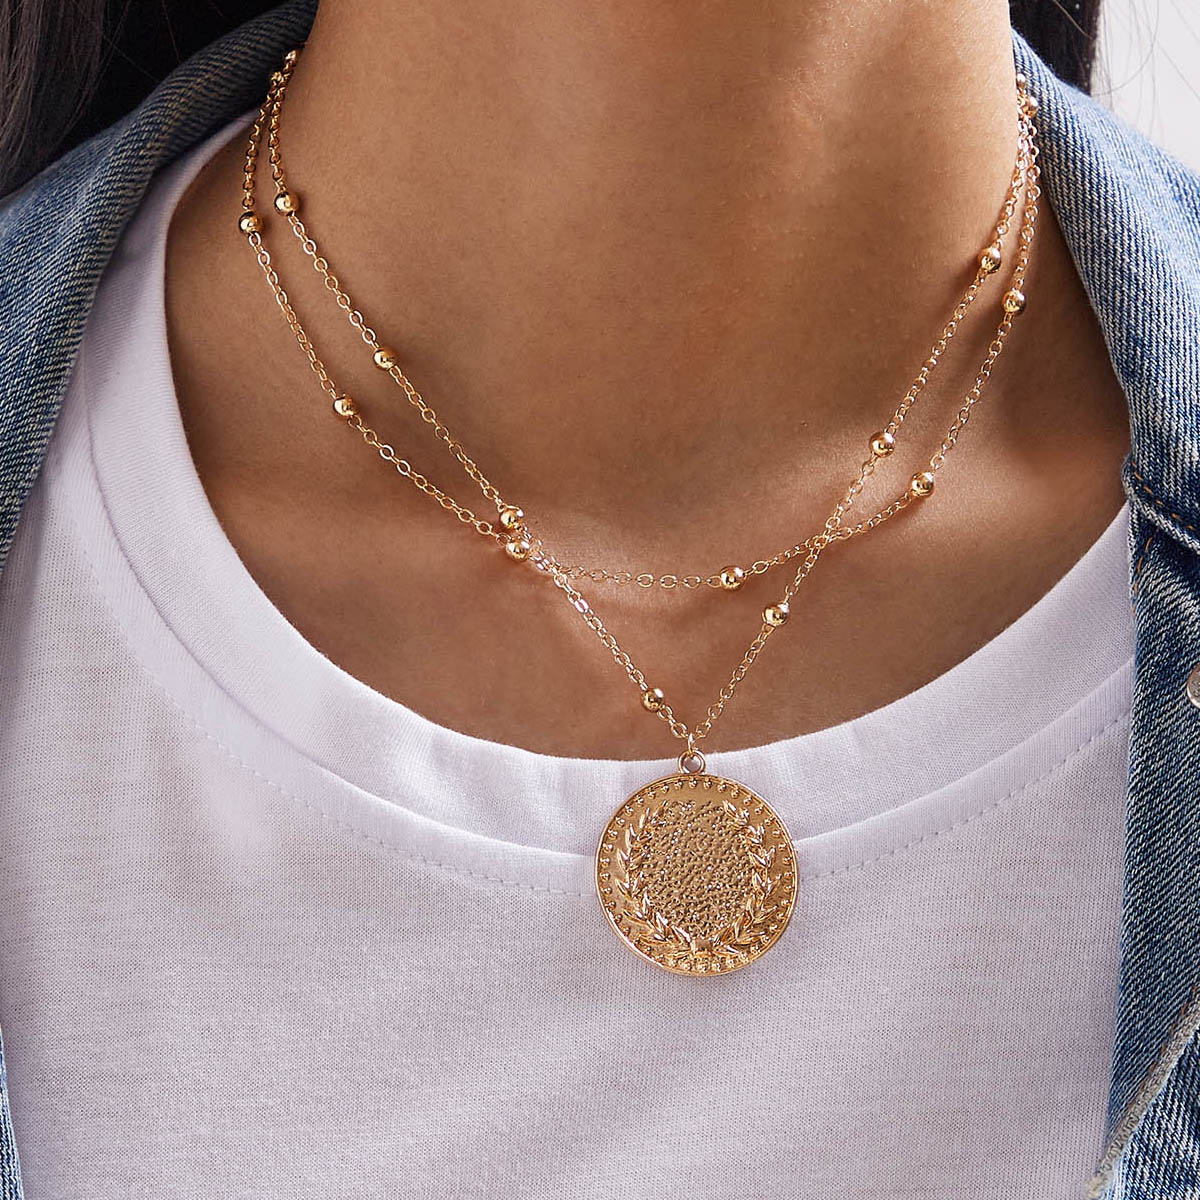 Textured Round Layered Pendant Necklace